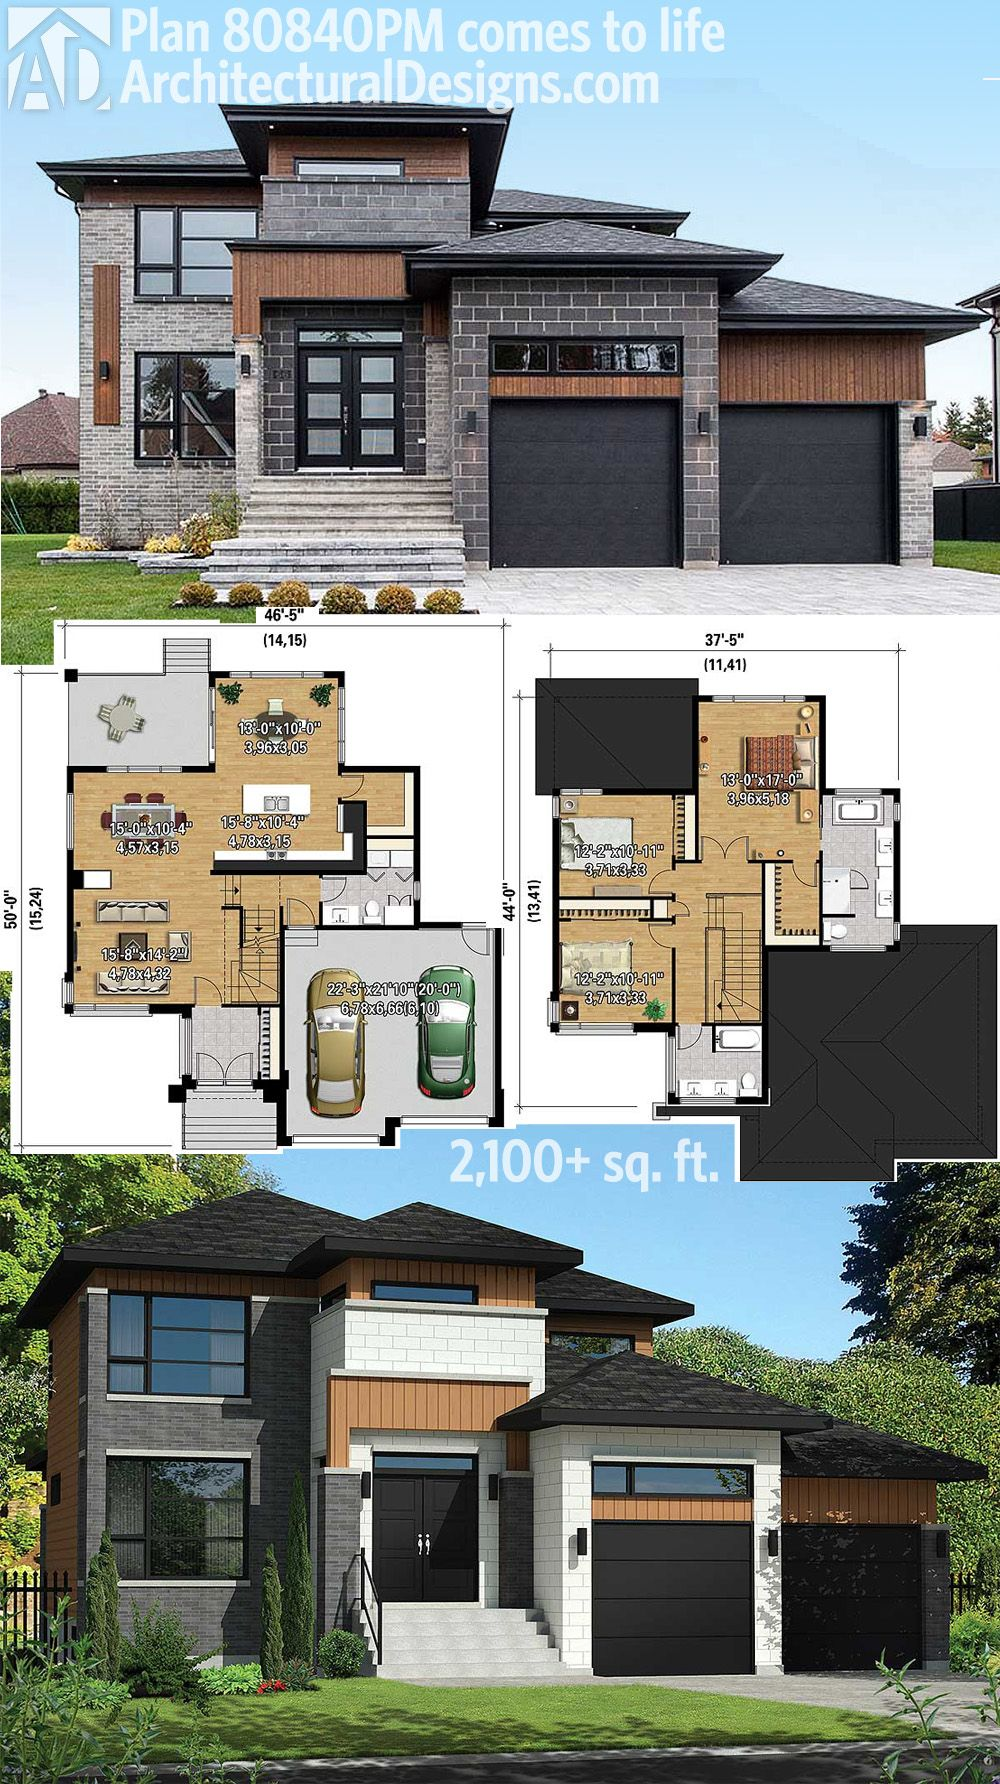 Architectural designs modern house plan 80840pm gives you over 2100 square feet of living with 3